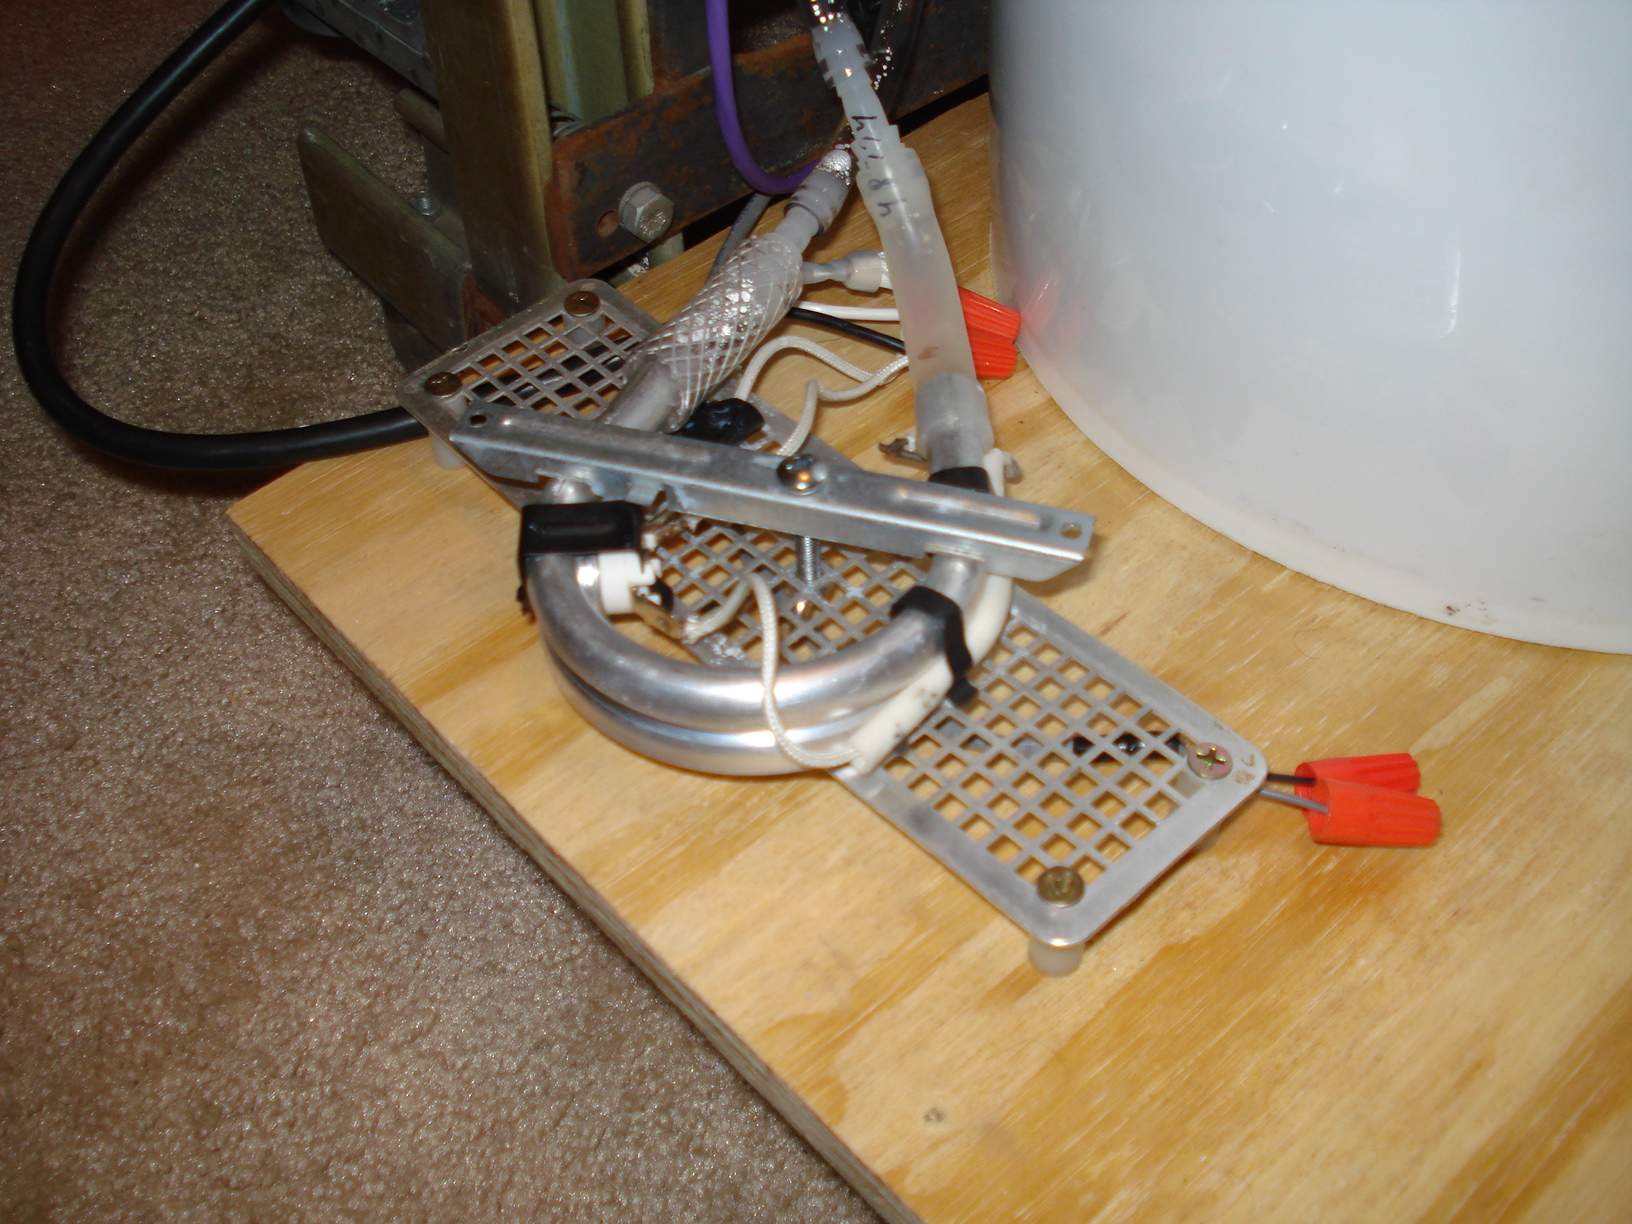 How To Clean A Coffee Maker Heating Element : May 2013